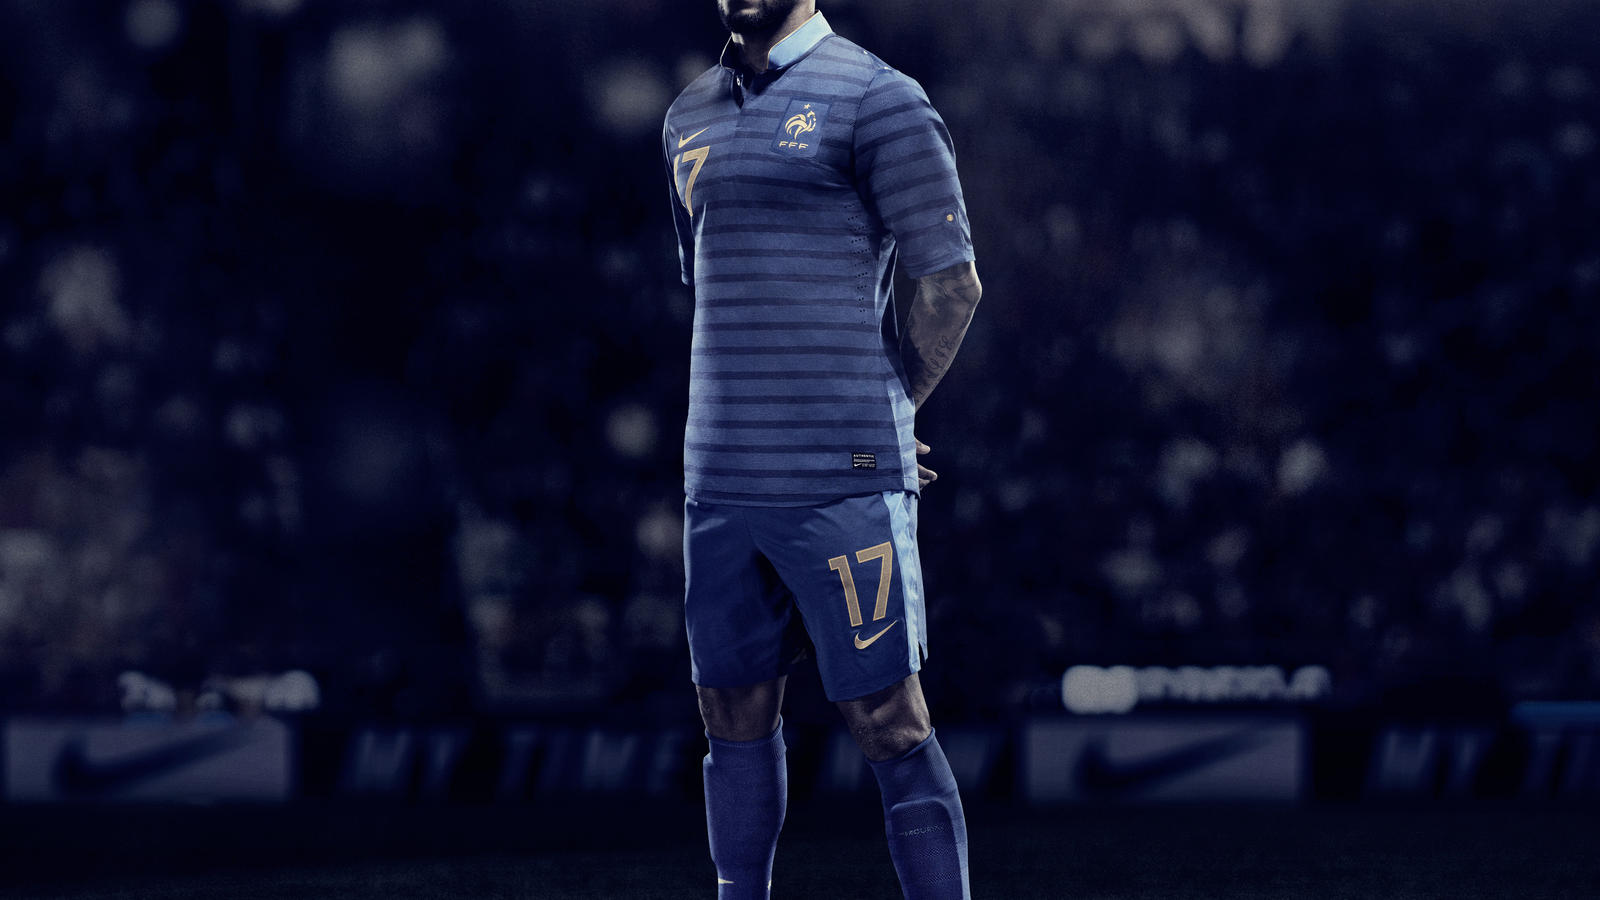 M_Vila_france_Home_NTK_02